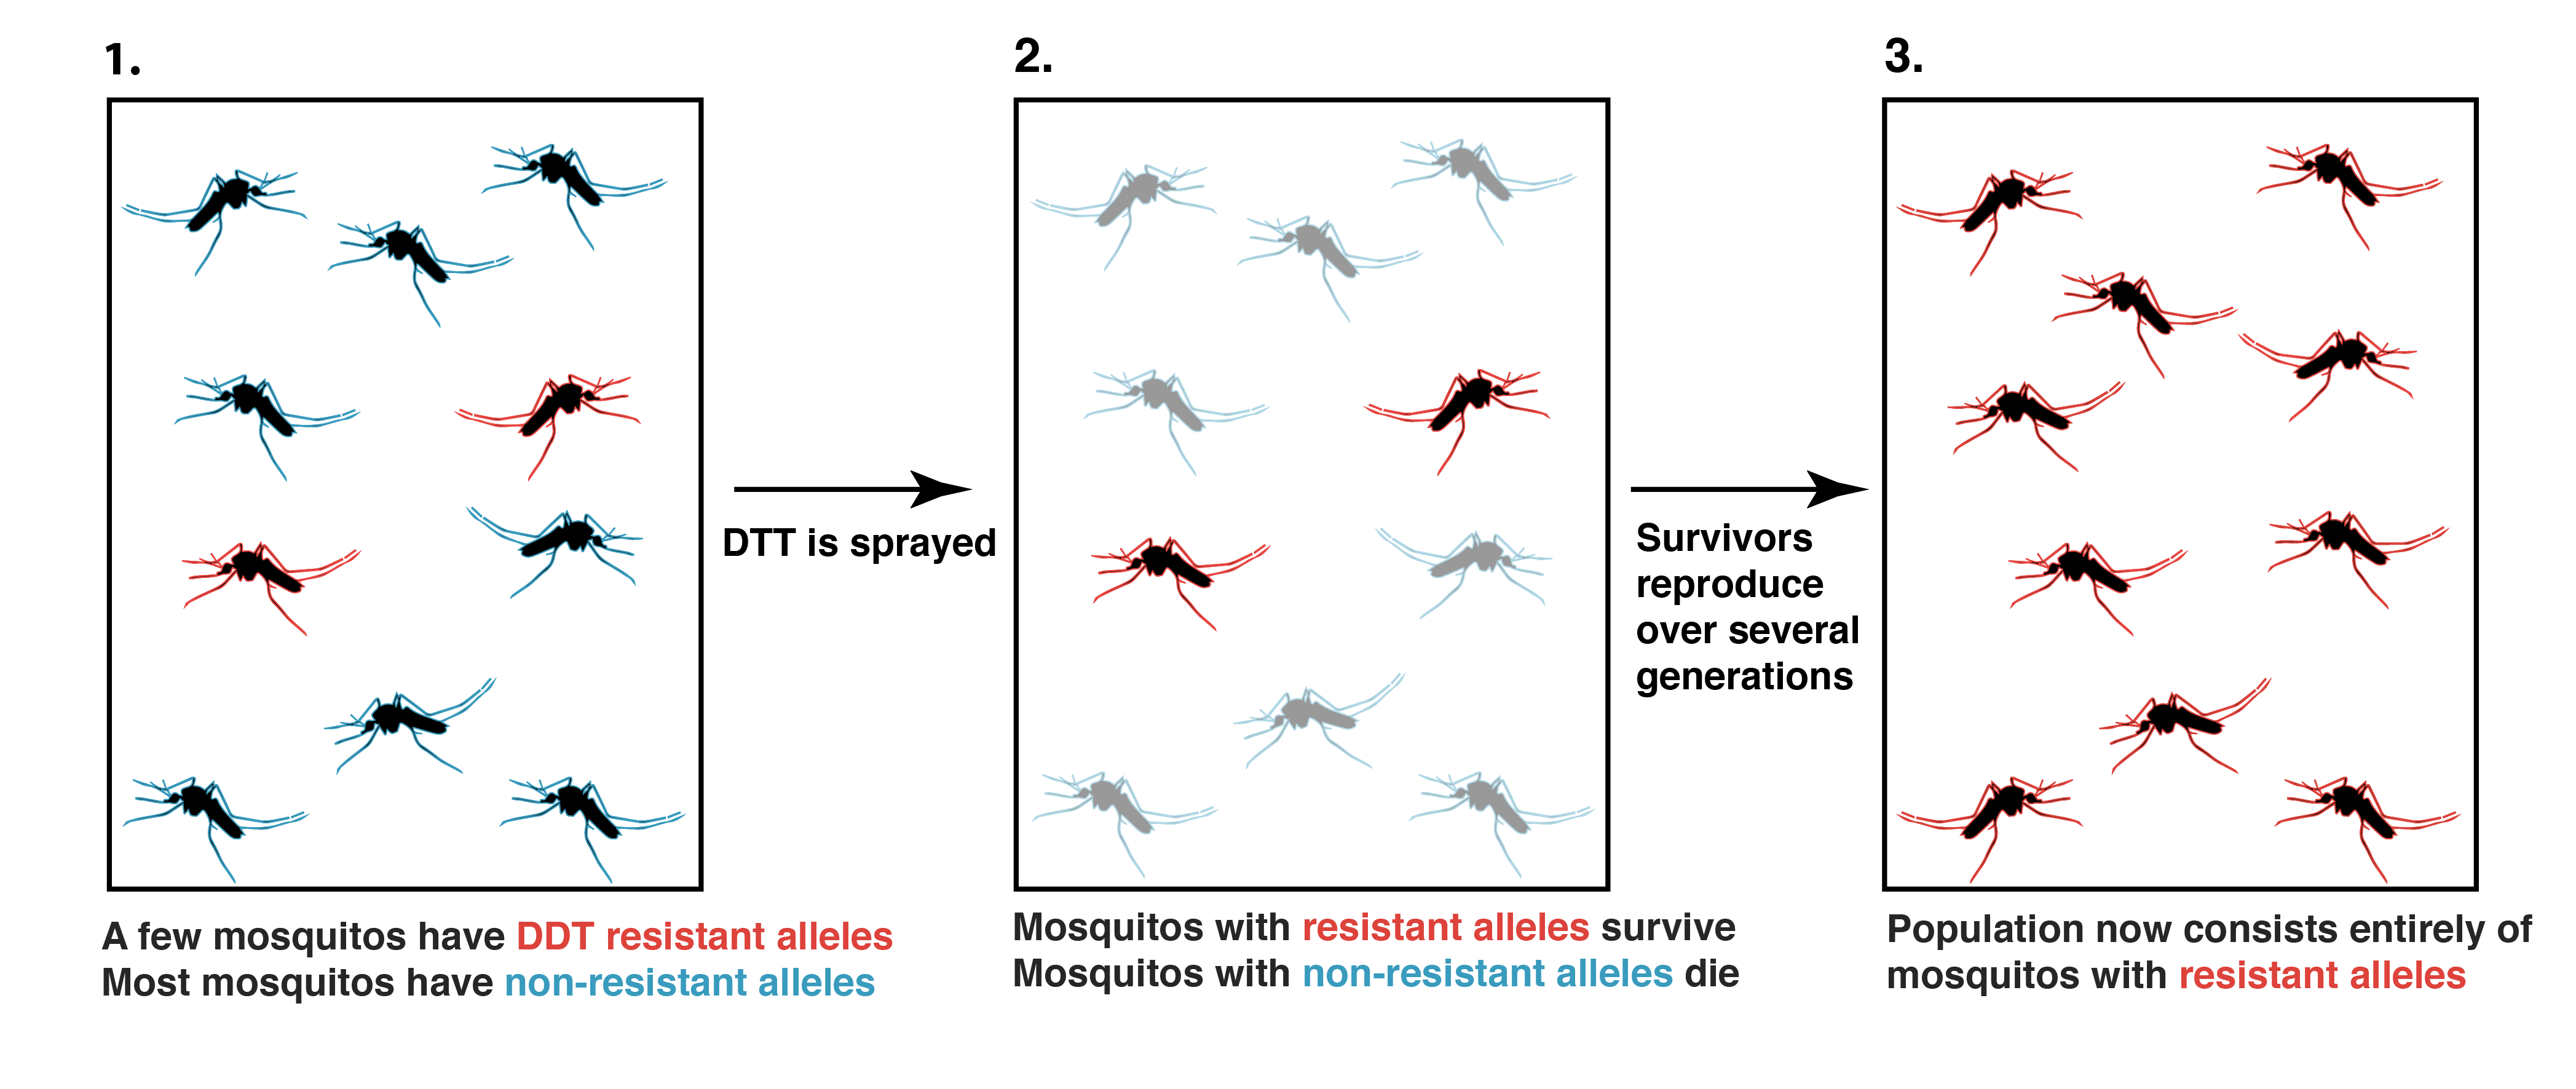 worksheet Natural Selection Worksheets evidence for evolution article khan academy the of ddt resistance in mosquito populations was observed directly 1950s as a result campaign to eradicate malaria